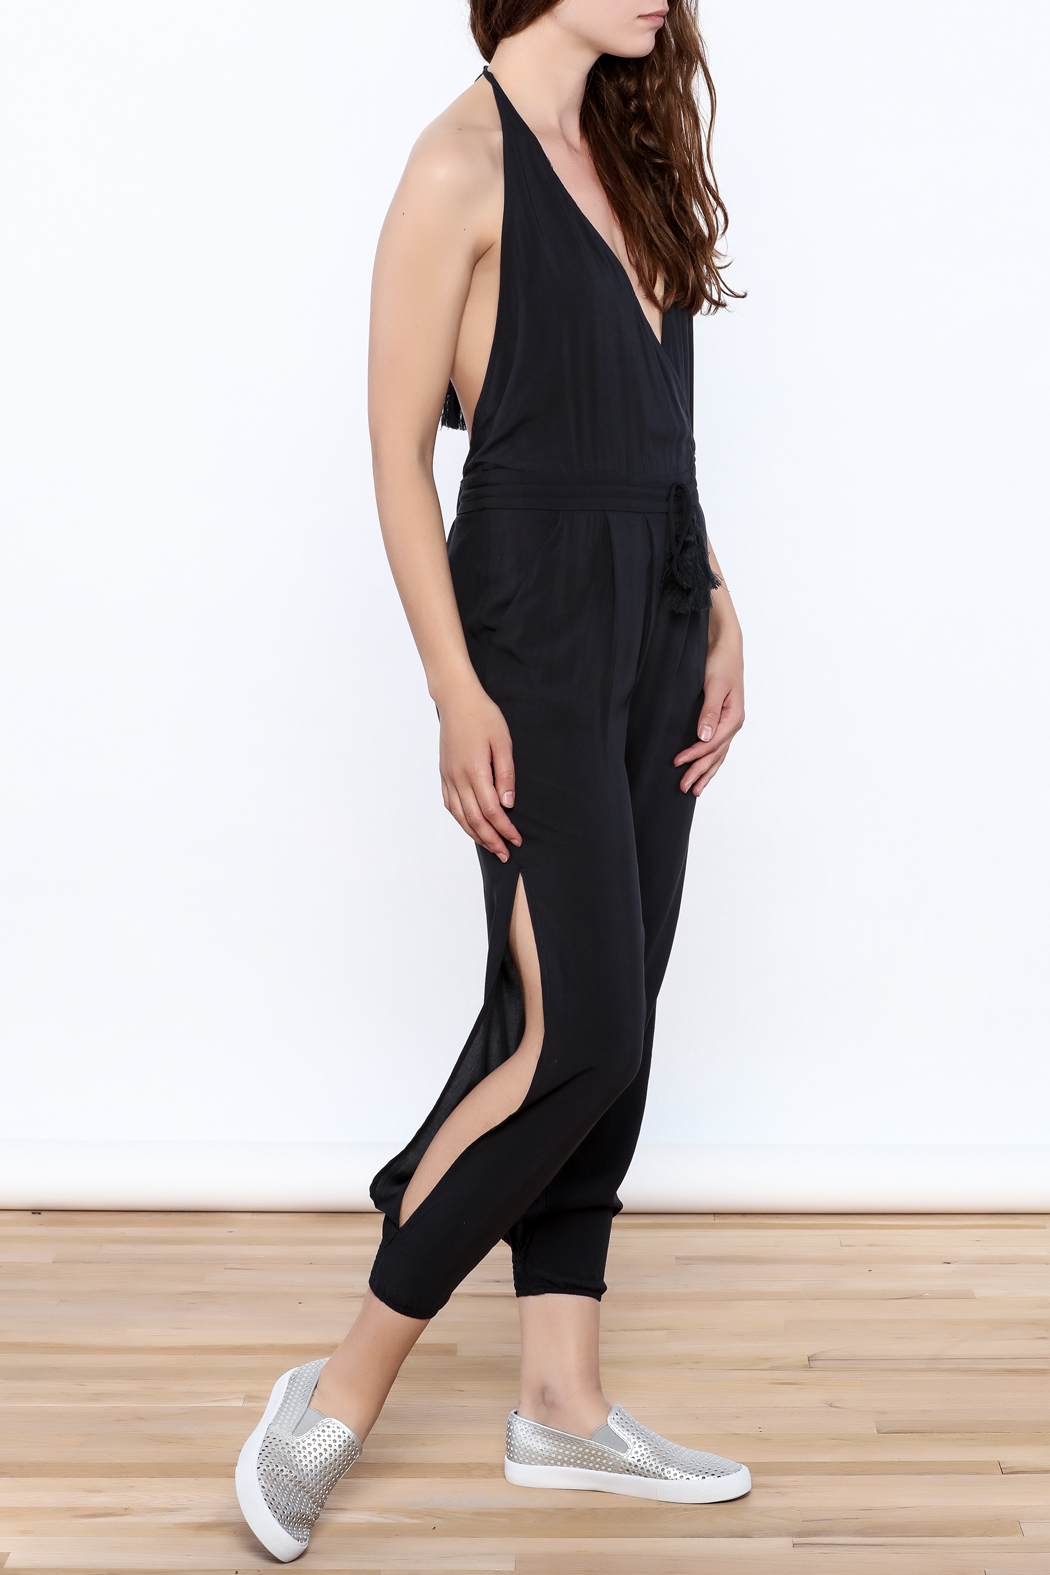 Mustard Seed Charcoal Sleeveless Jumpsuit - Main Image